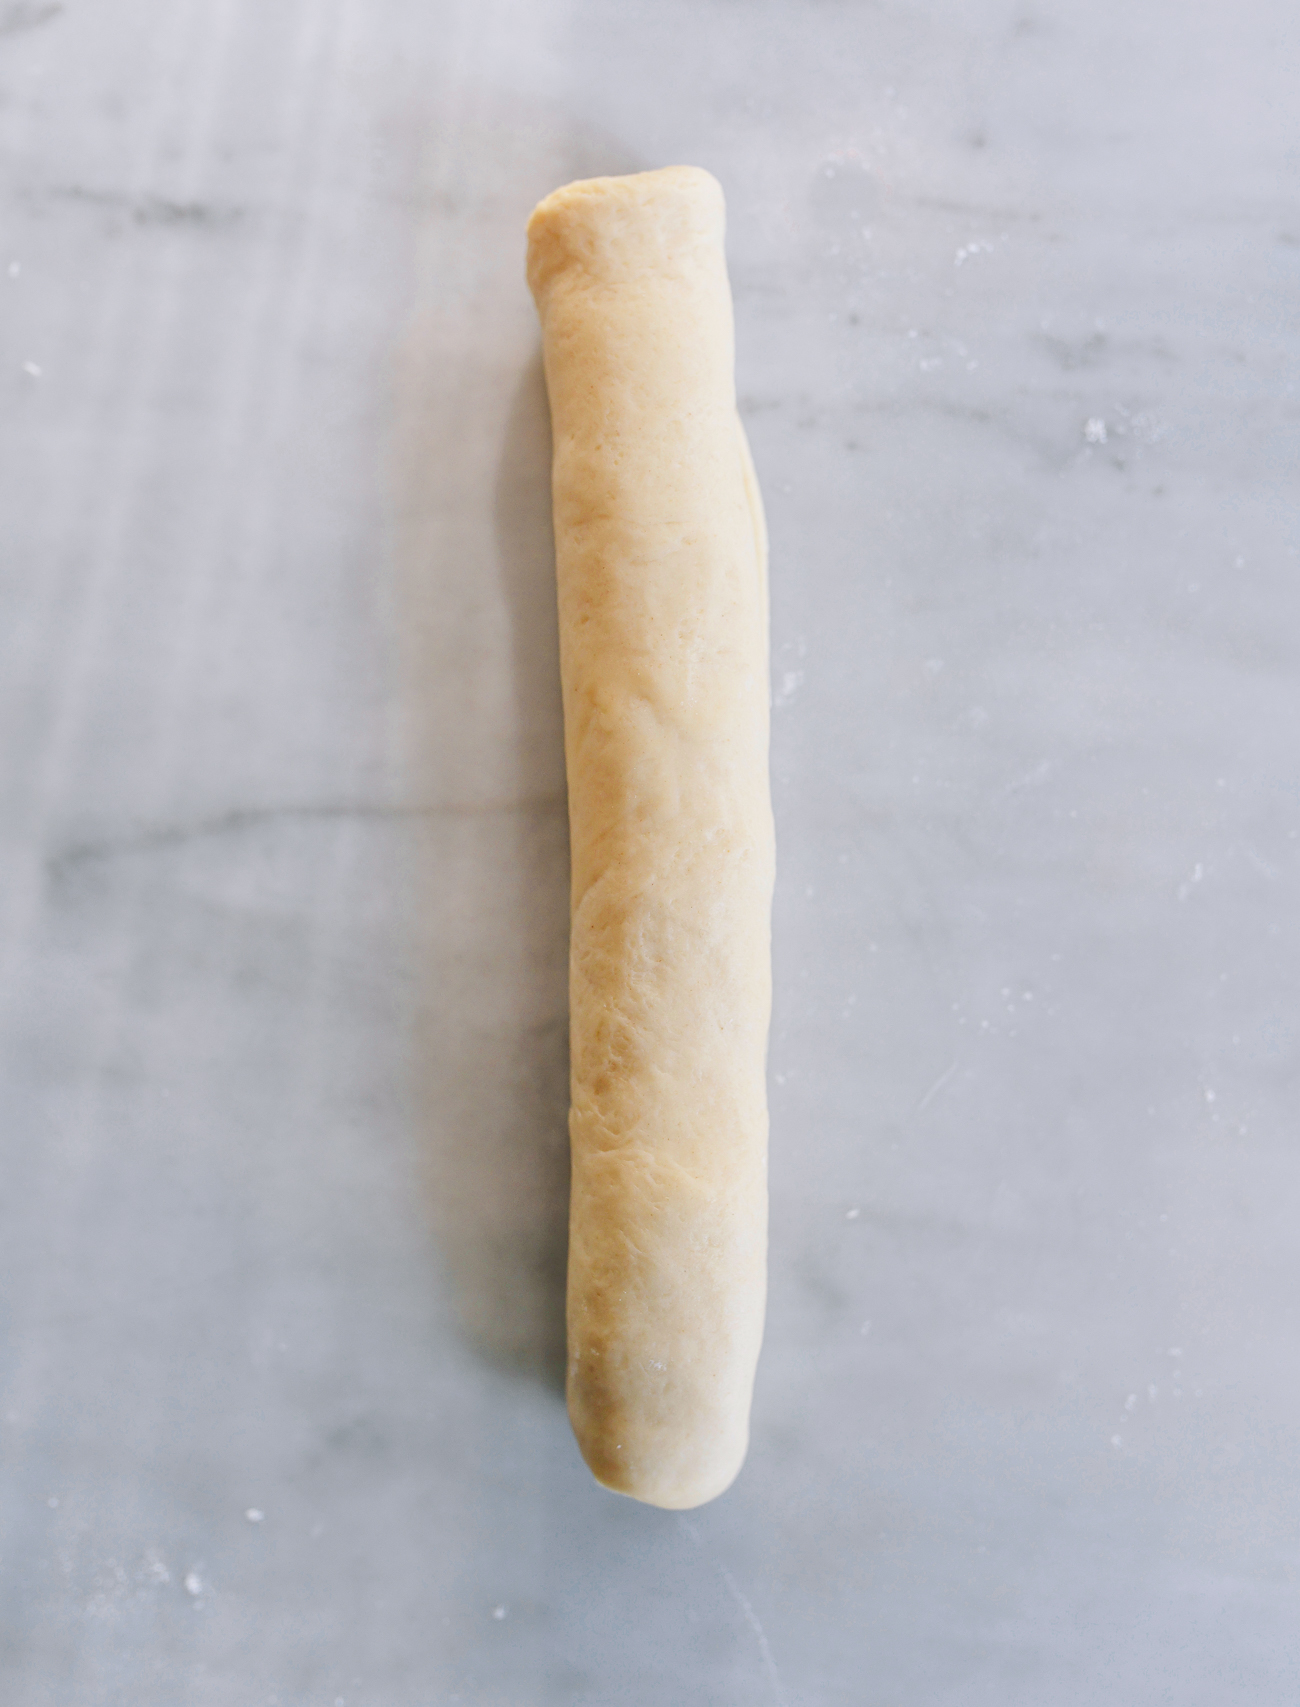 Rolled cigar of dough